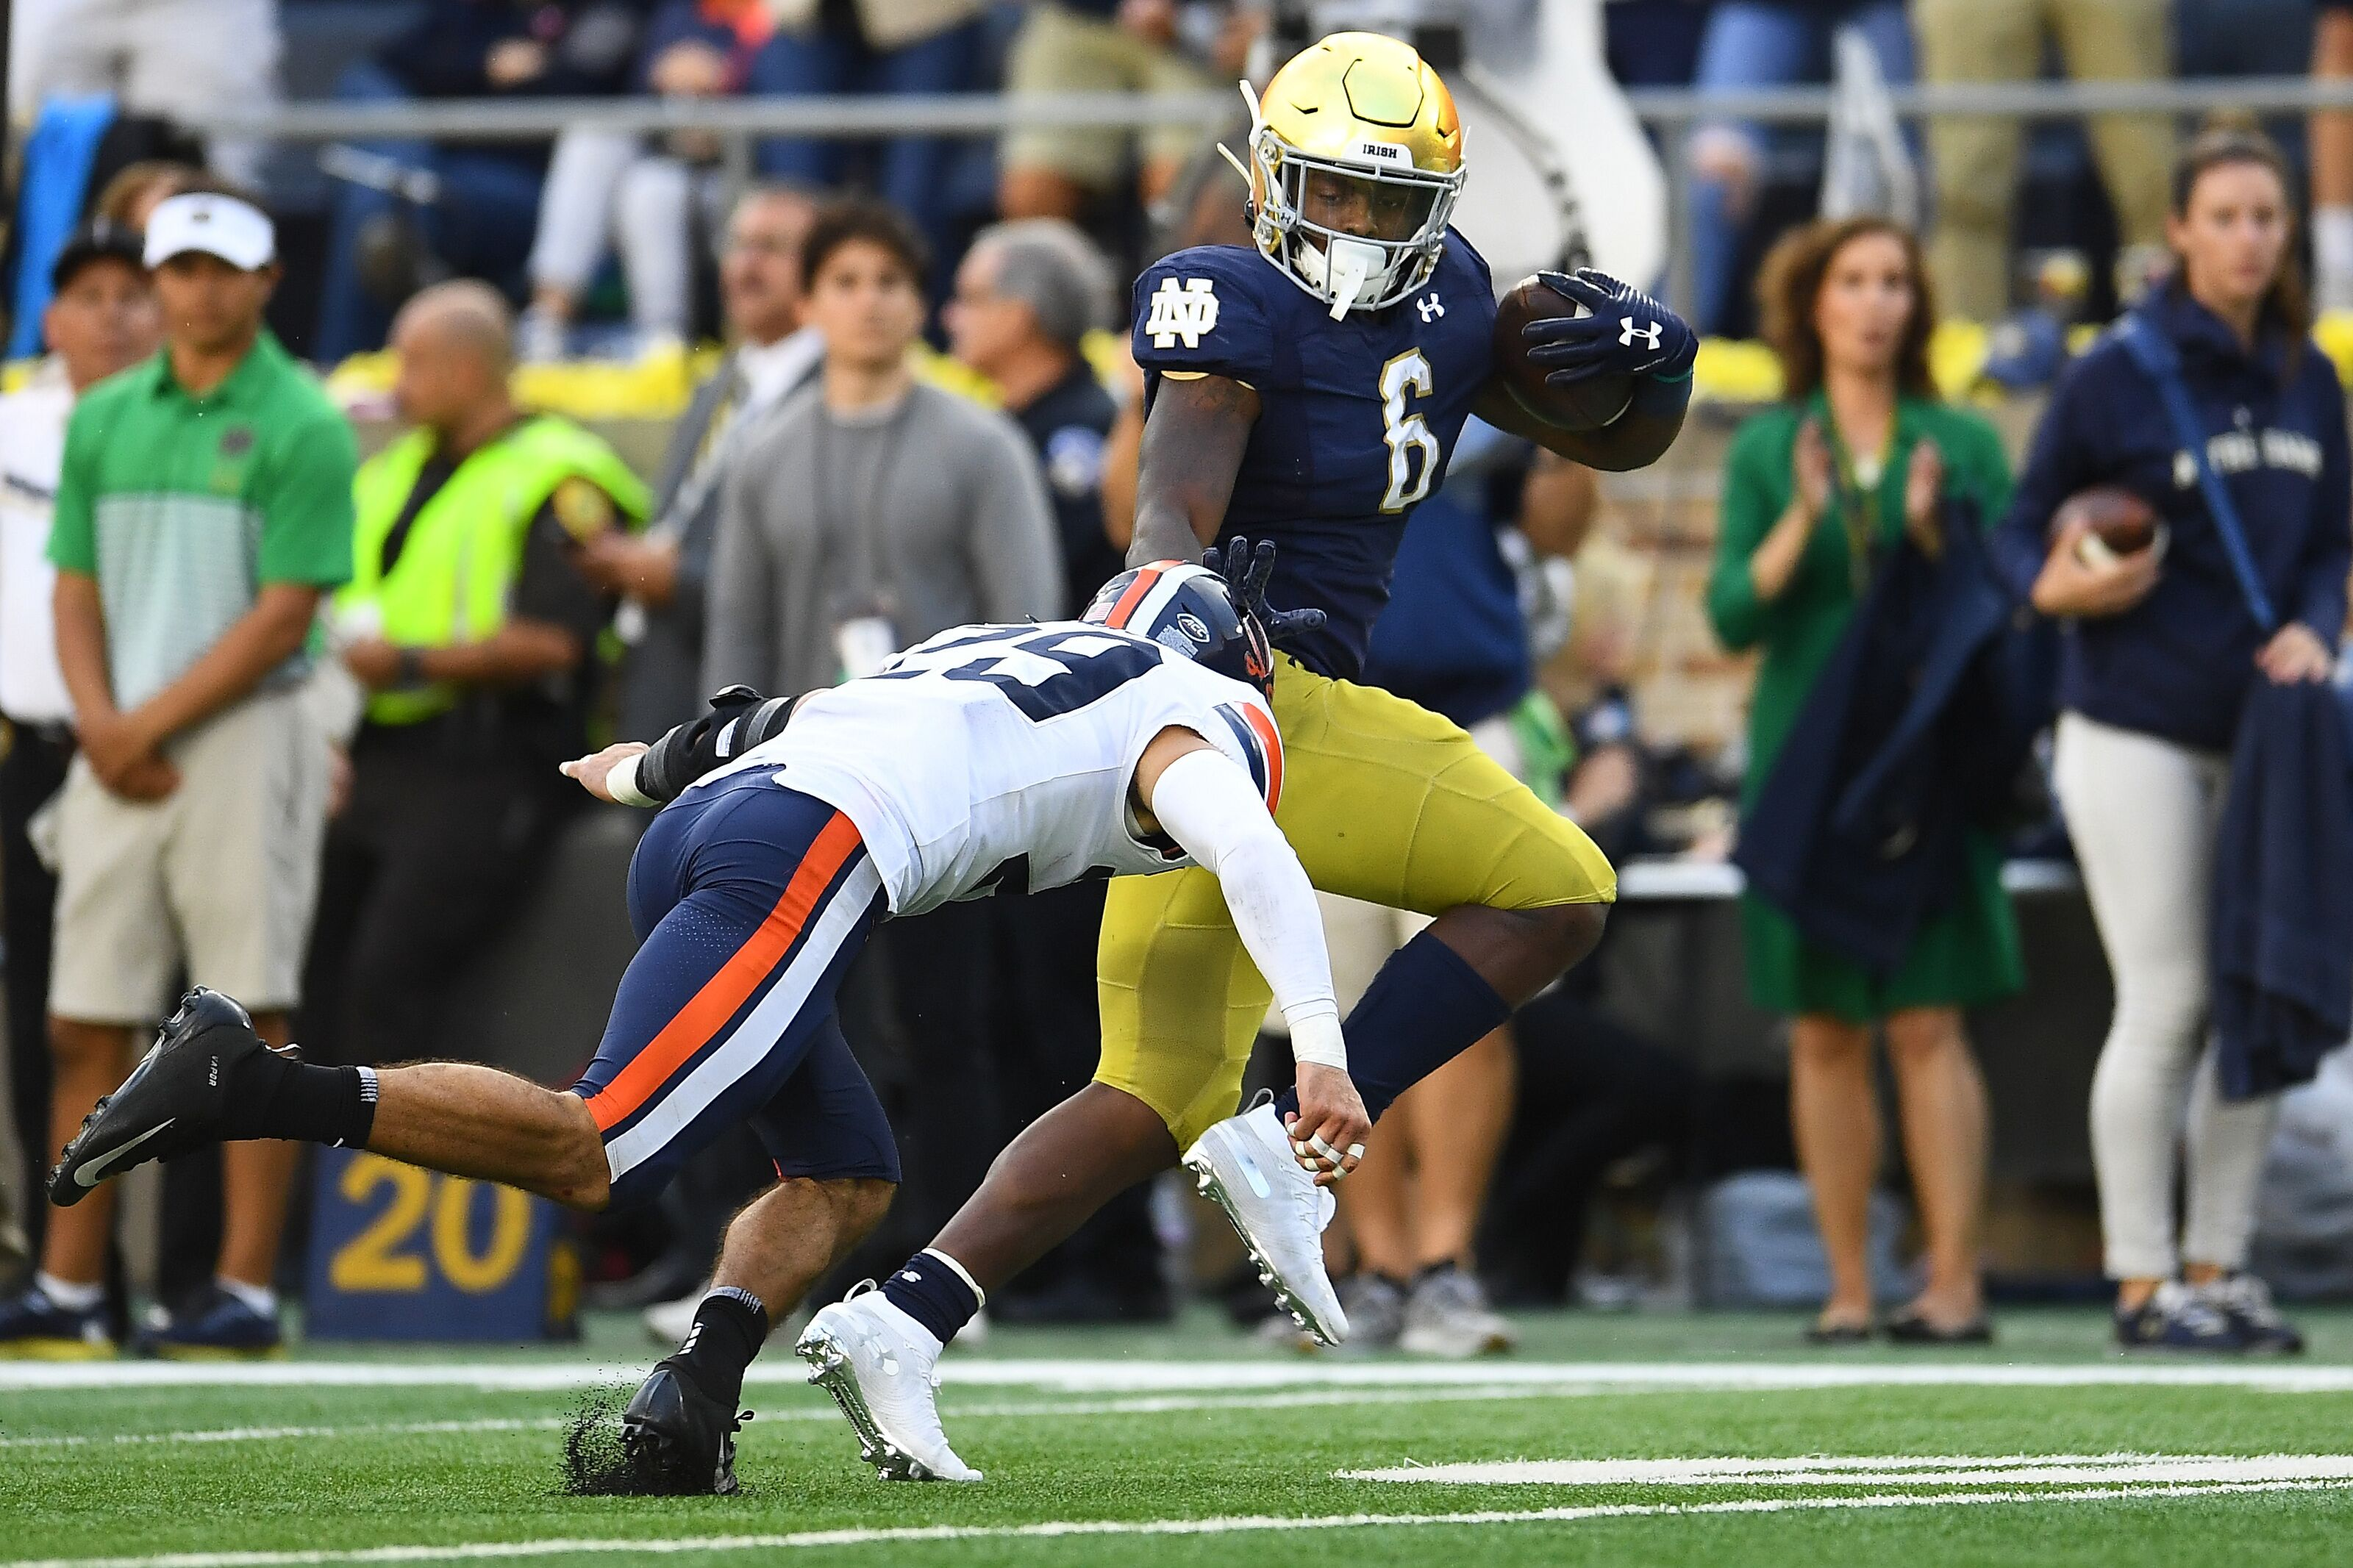 Notre Dame Football: Why the Irish need to crush Bowling Green